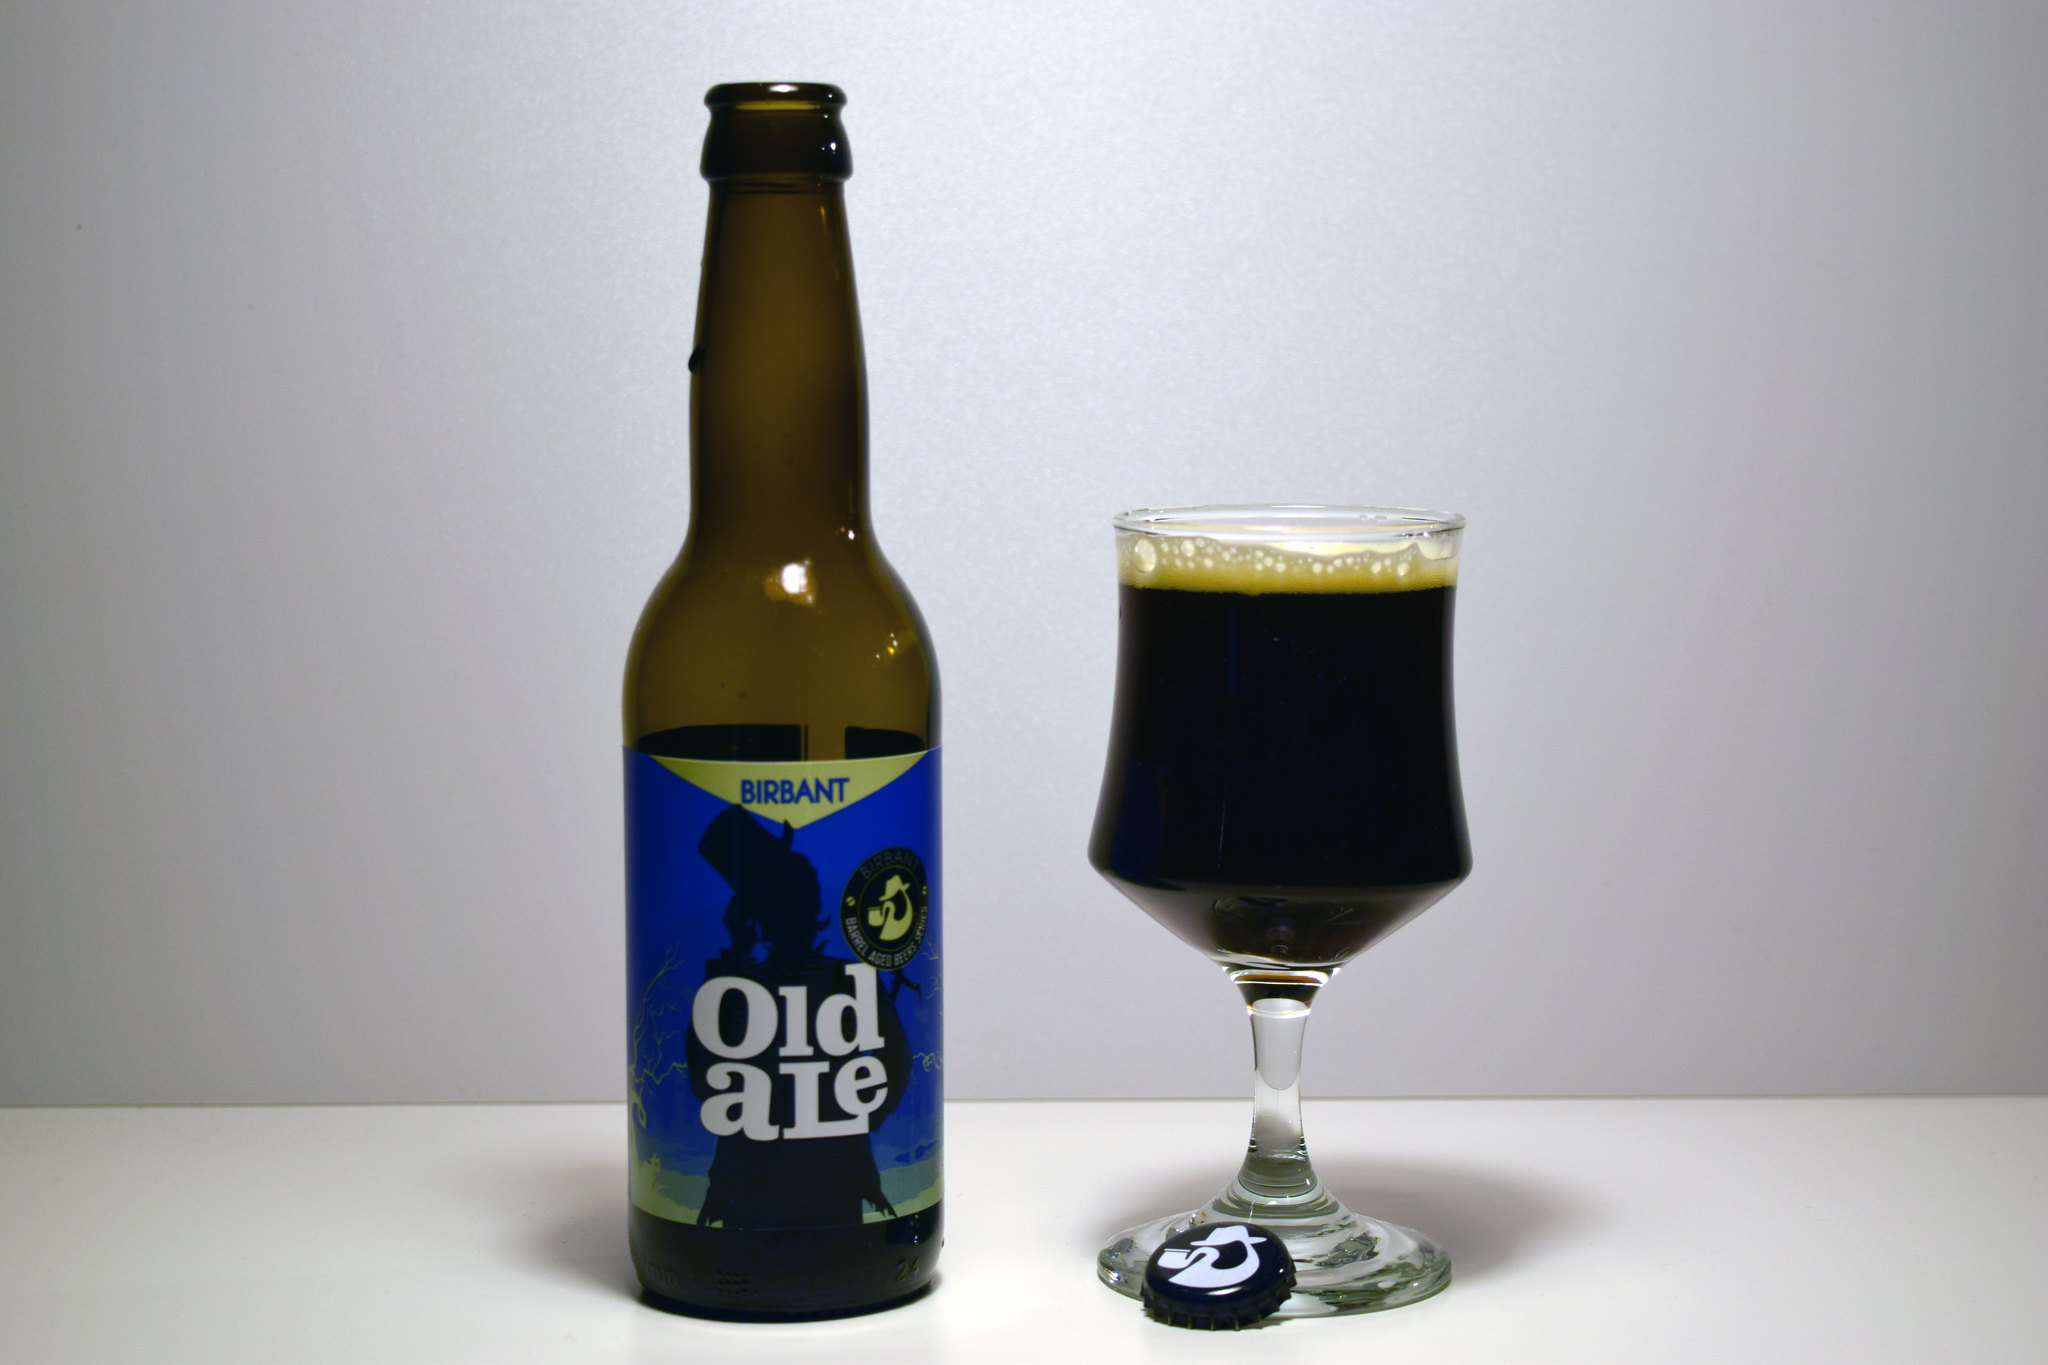 old ale barrel aged